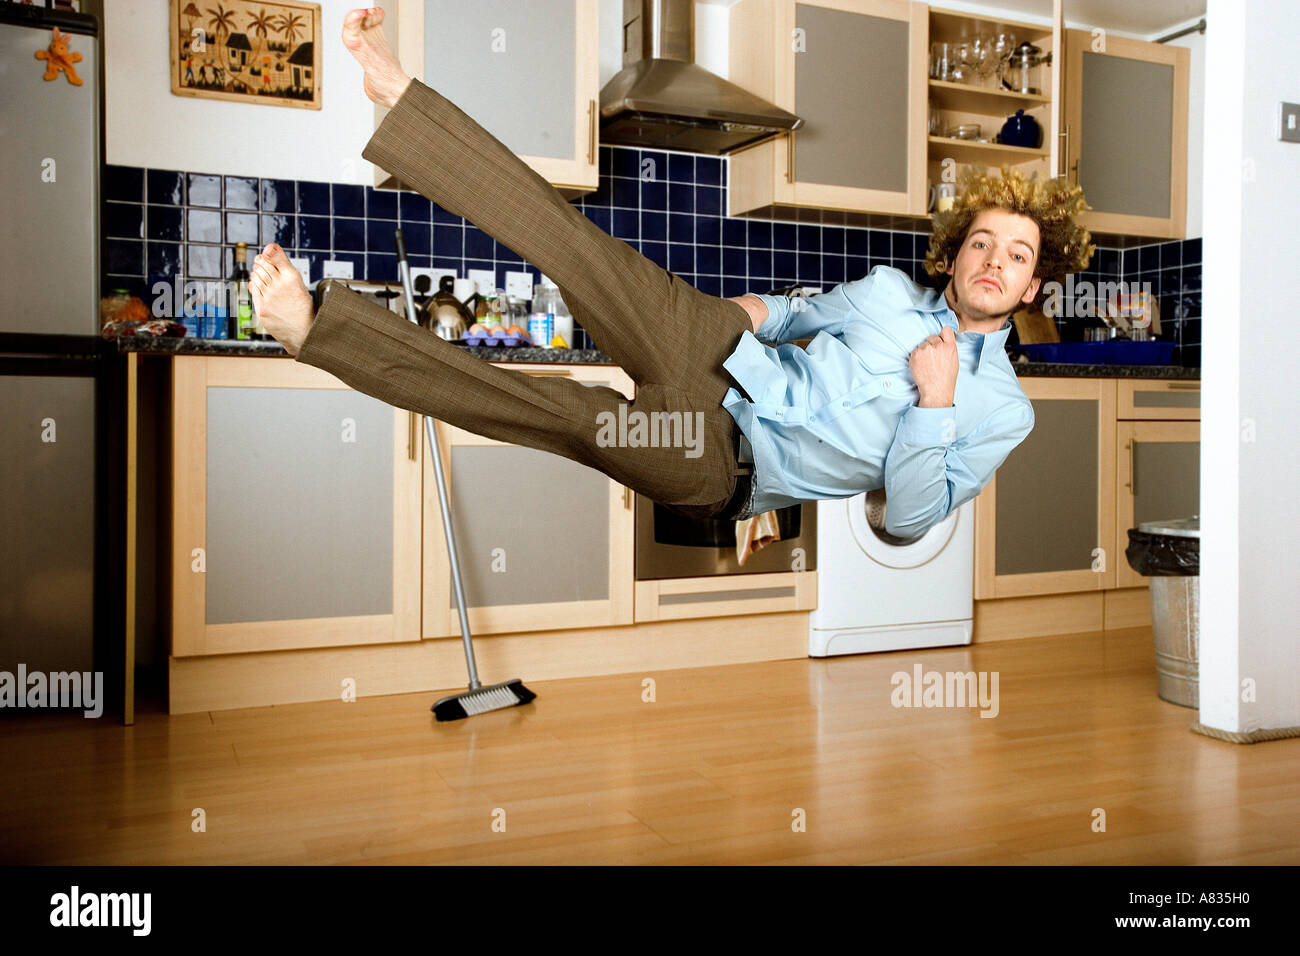 Airborne young man in pants and shirt in the kitchen falling ...